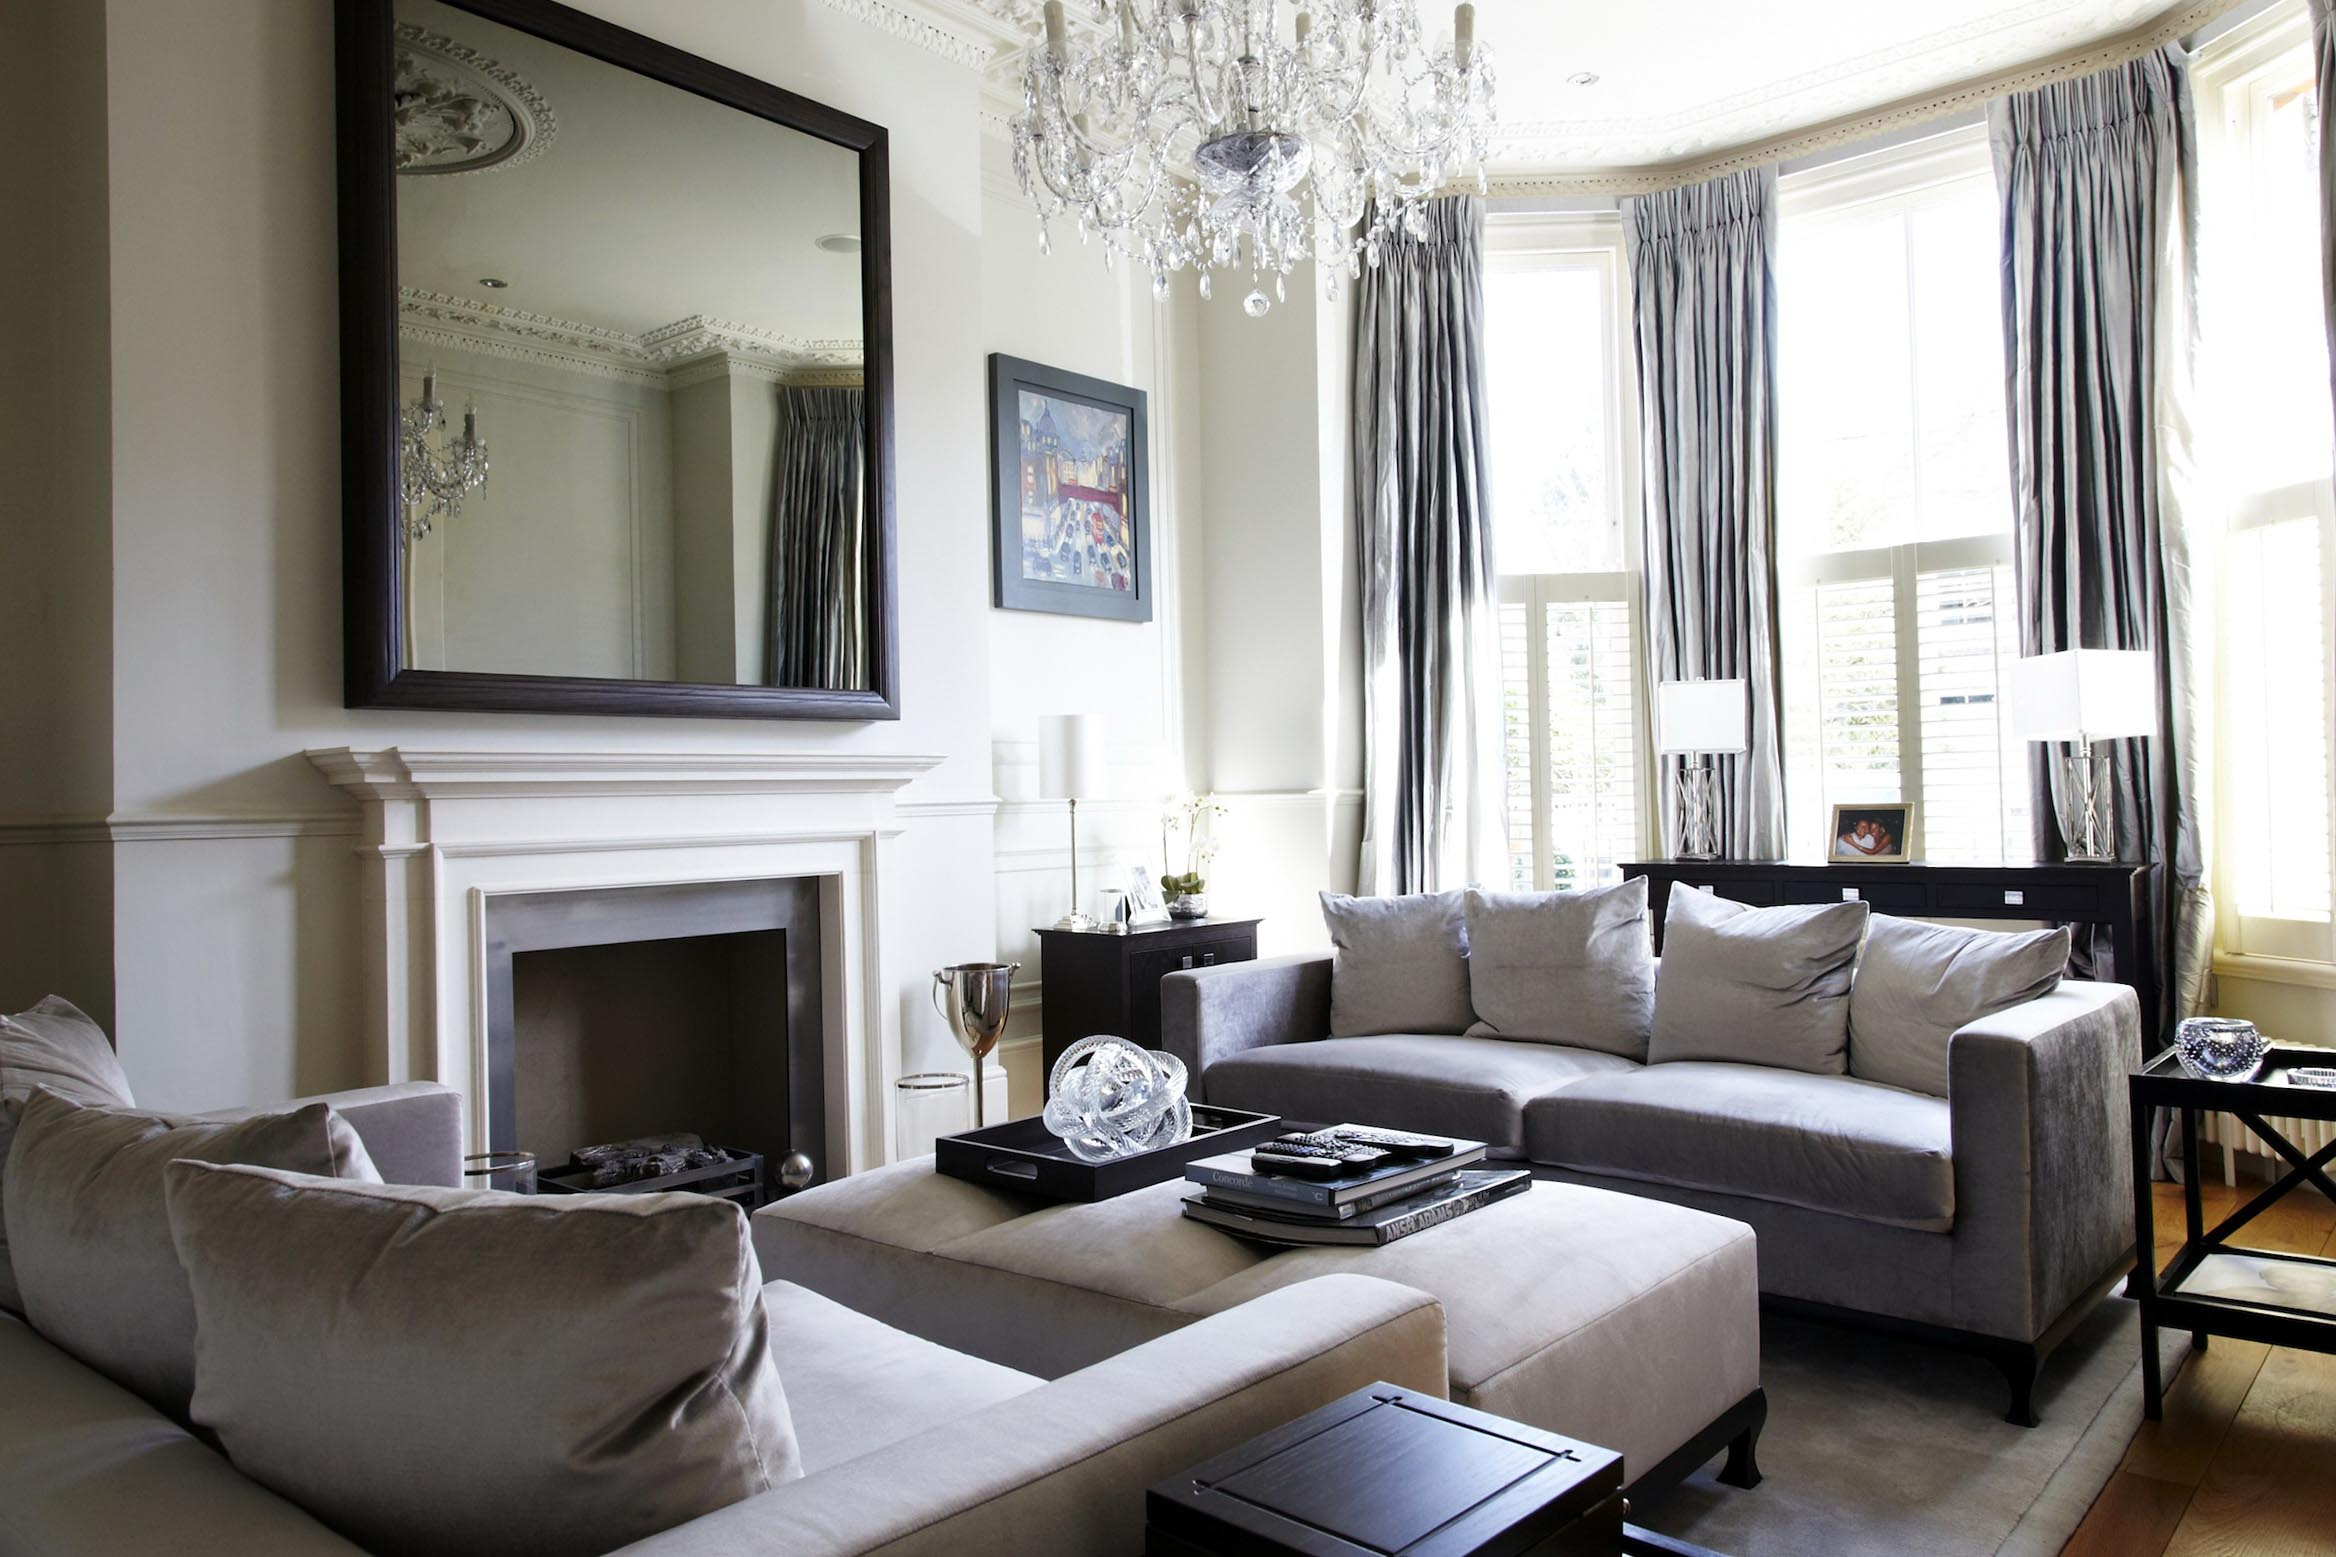 Wall Mirrors For Living Rooms Pertaining To Fashionable Large Wall Mirrors For Living Room (View 14 of 20)